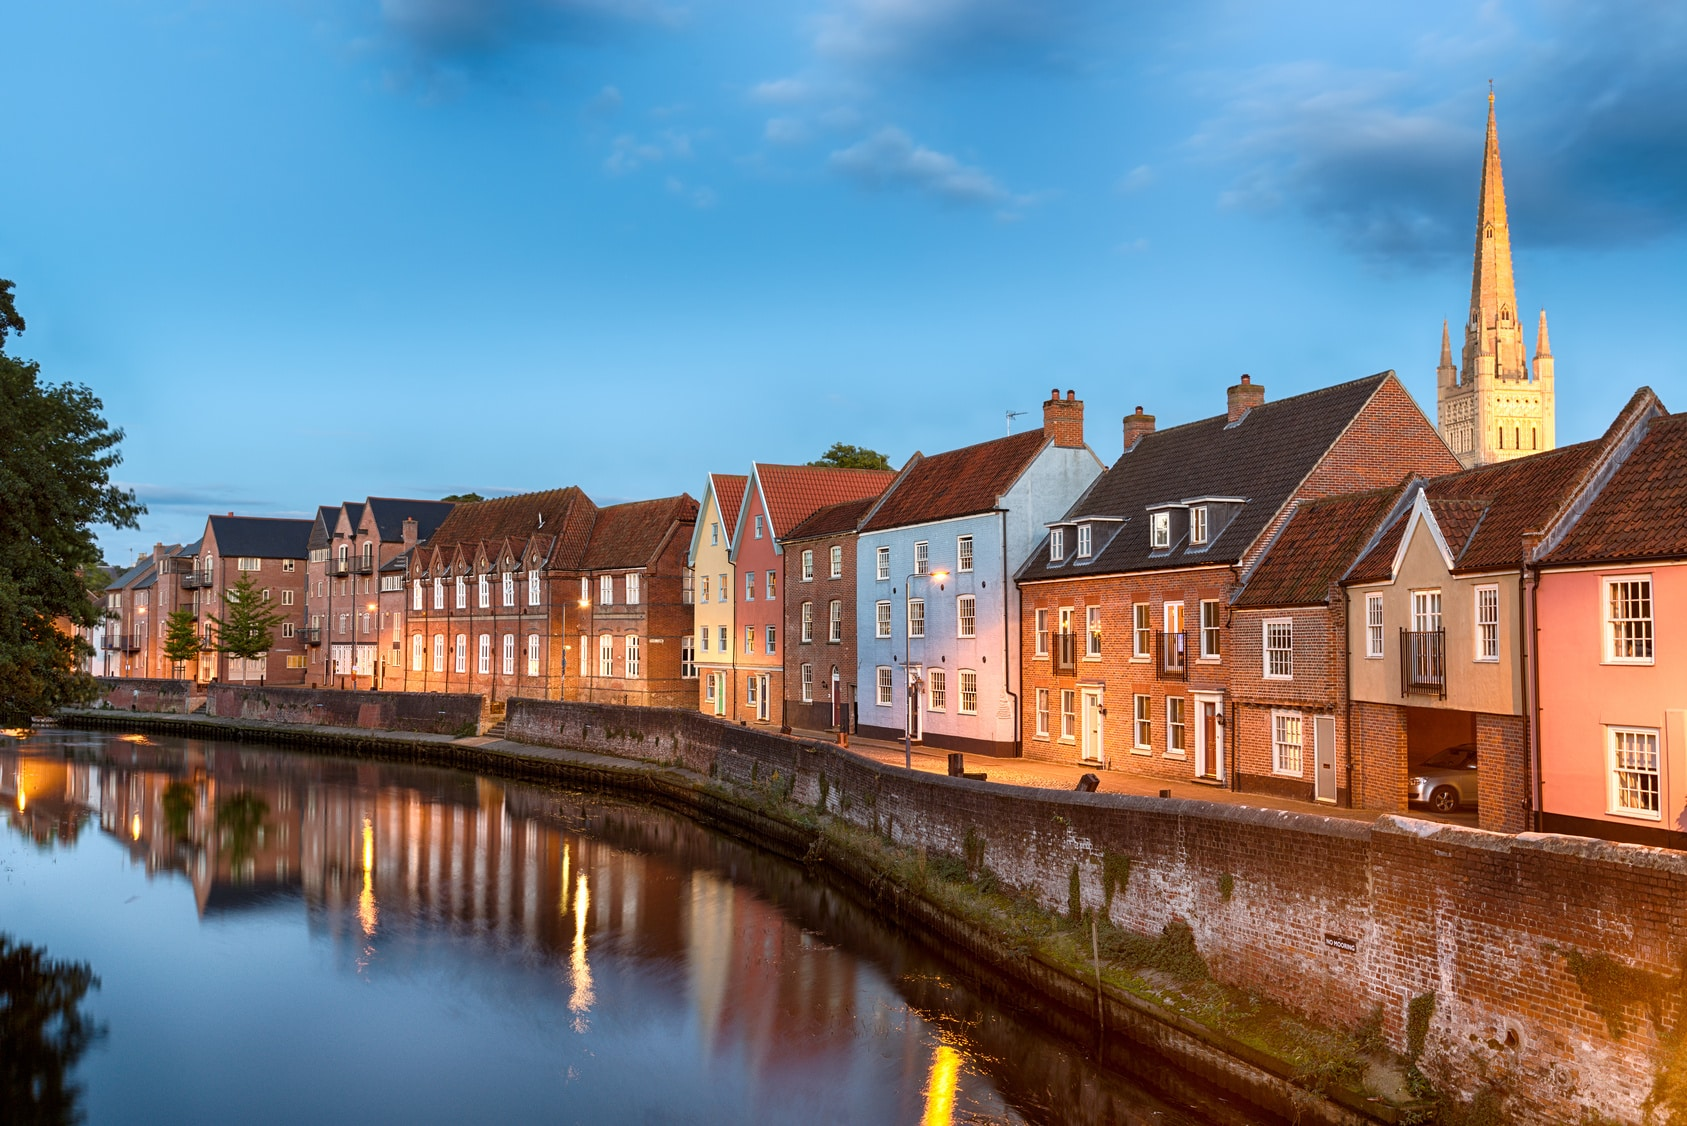 Norwich Student Accommodation - Historic town houses at night , Norwich